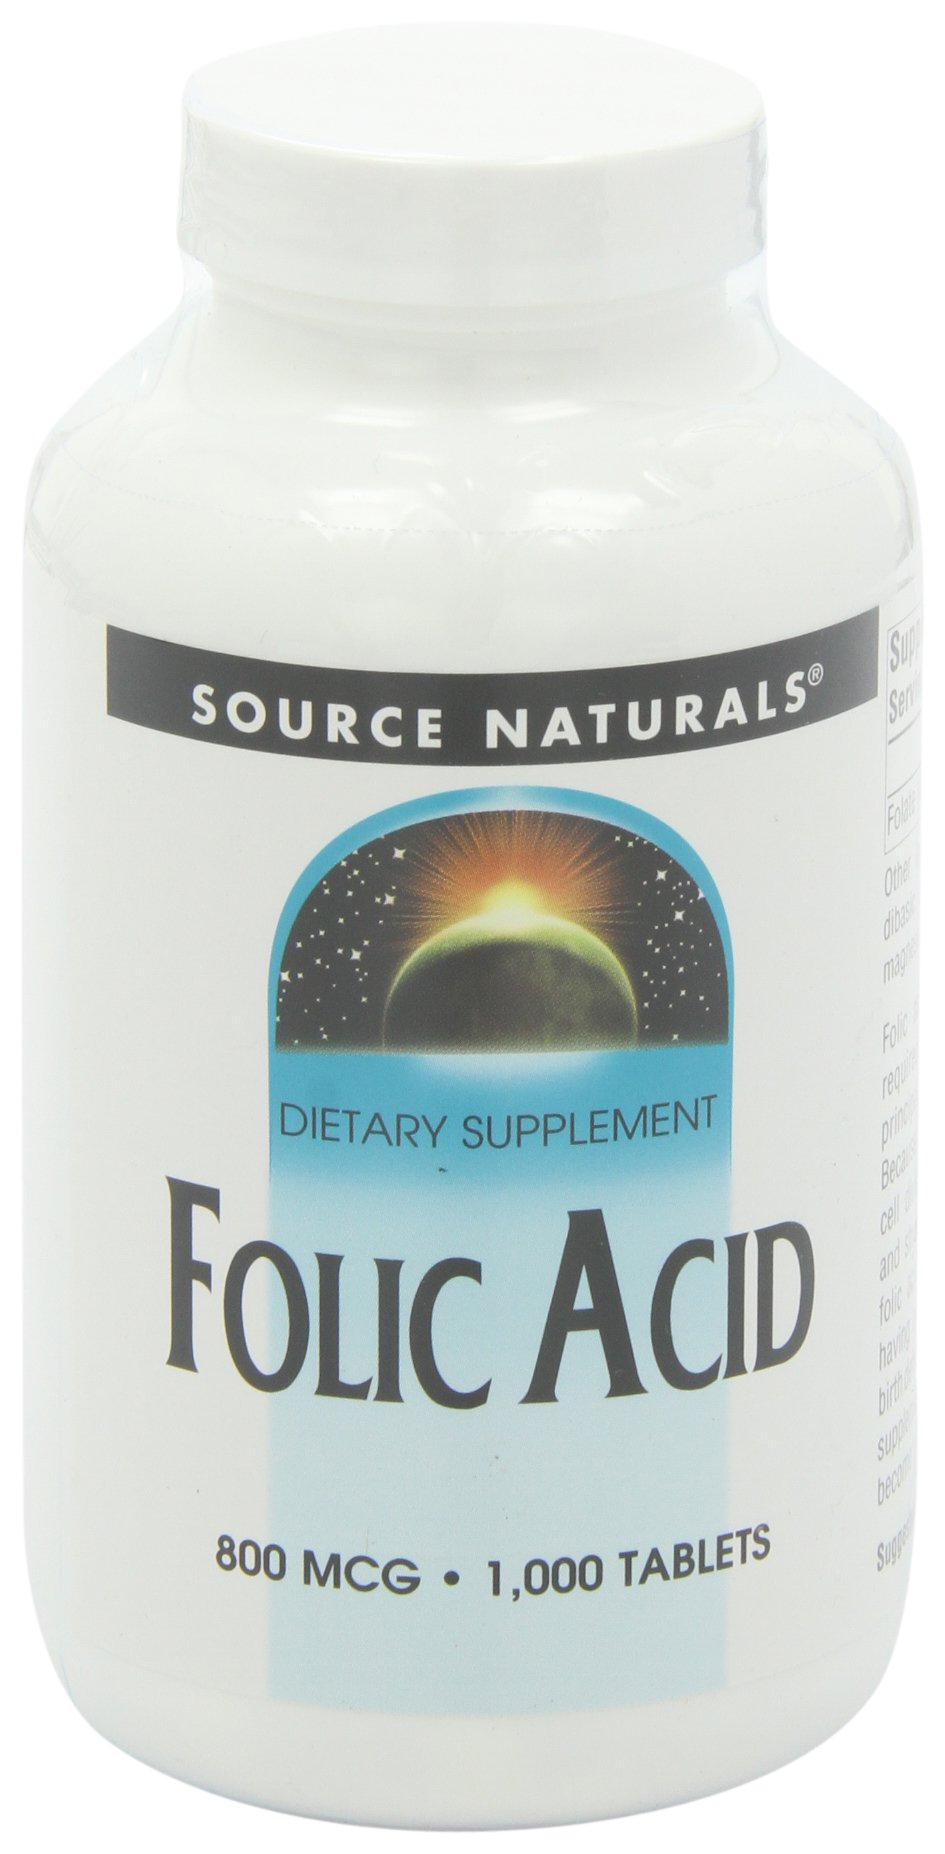 Source Naturals Folic Acid, 800mcg, 1000 Tablets (Pack of 2) by Source Naturals